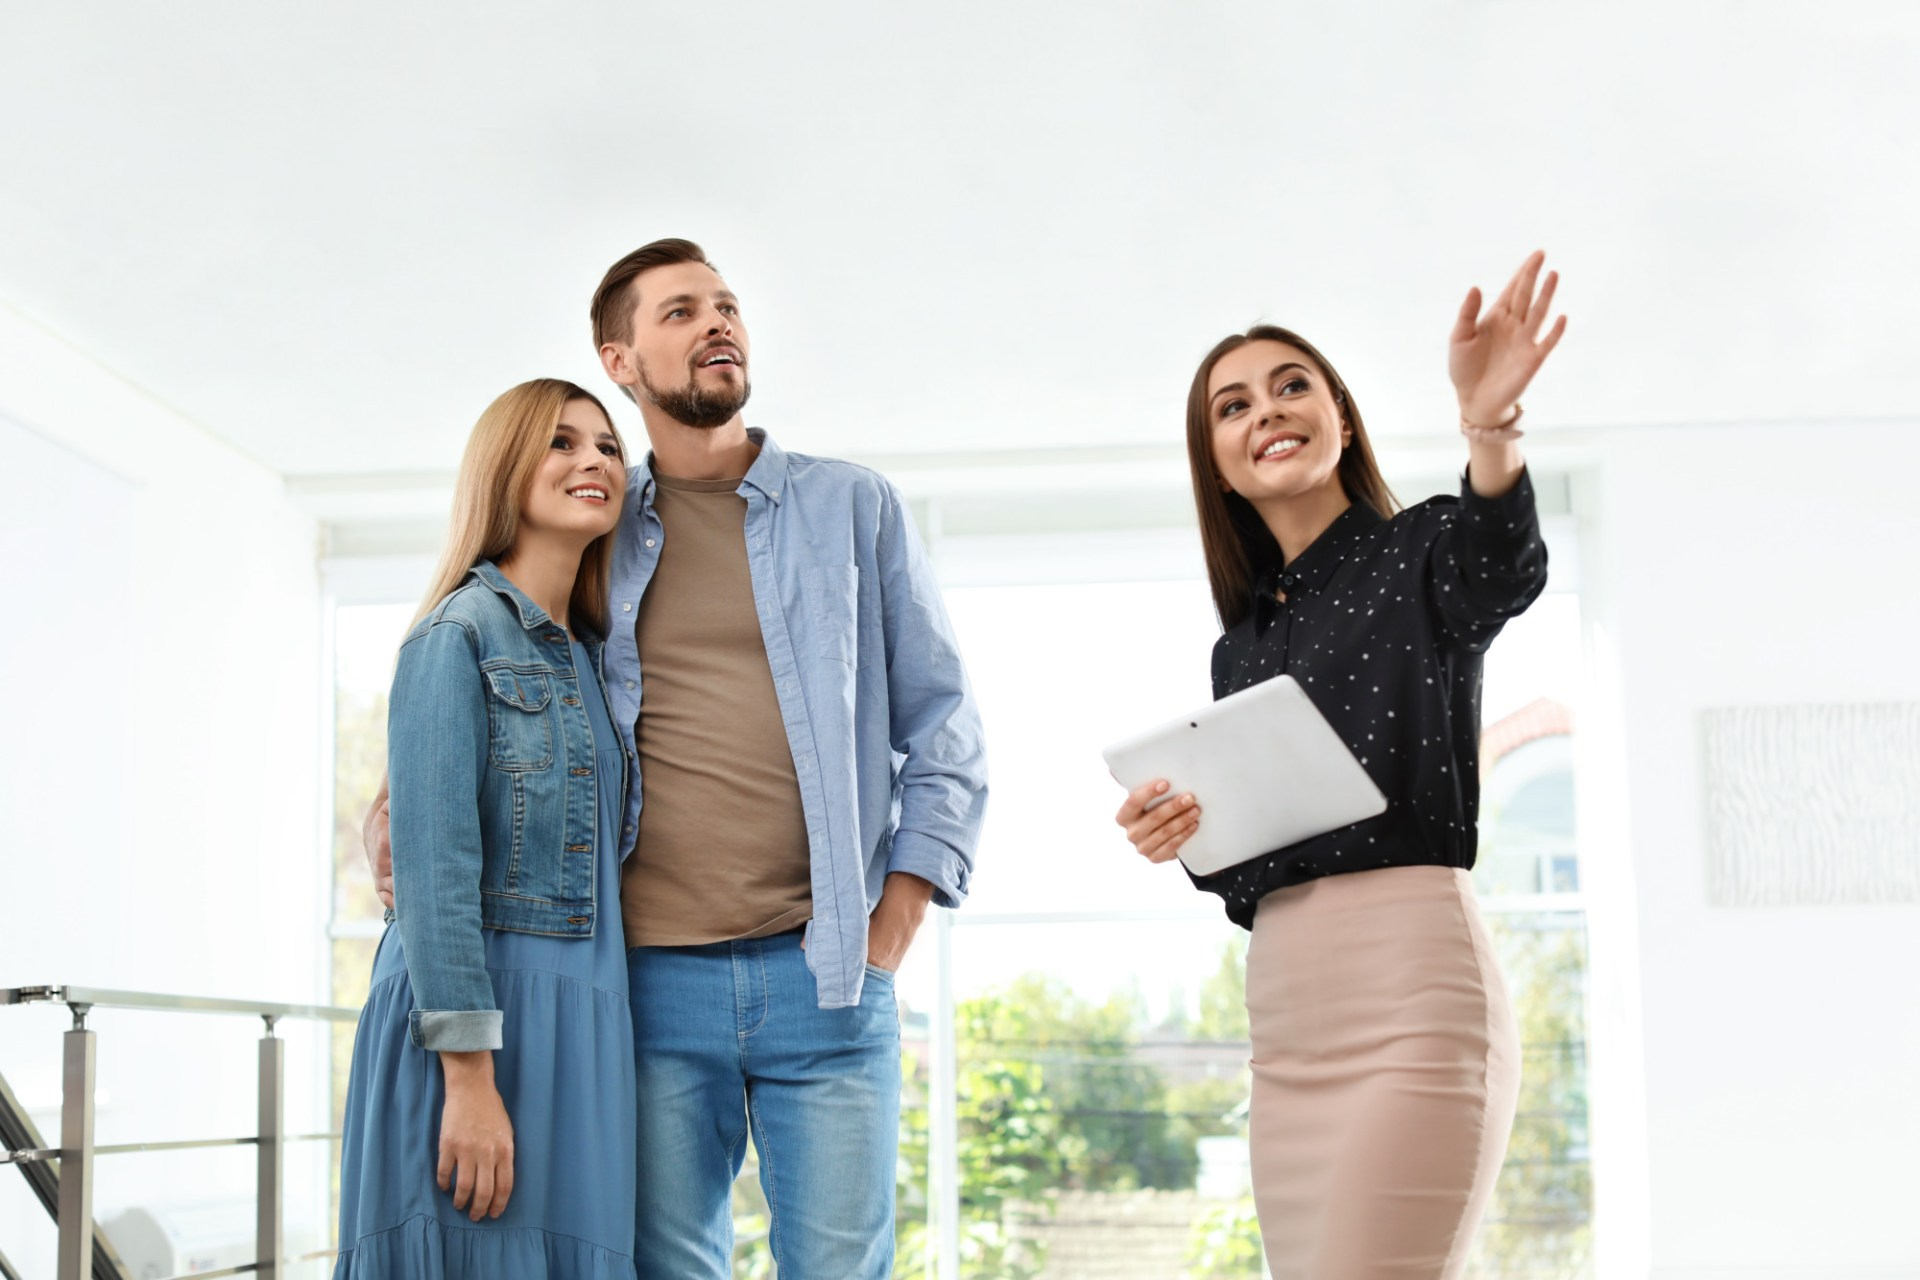 Listing Agent vs Buyer's Agent in NYC